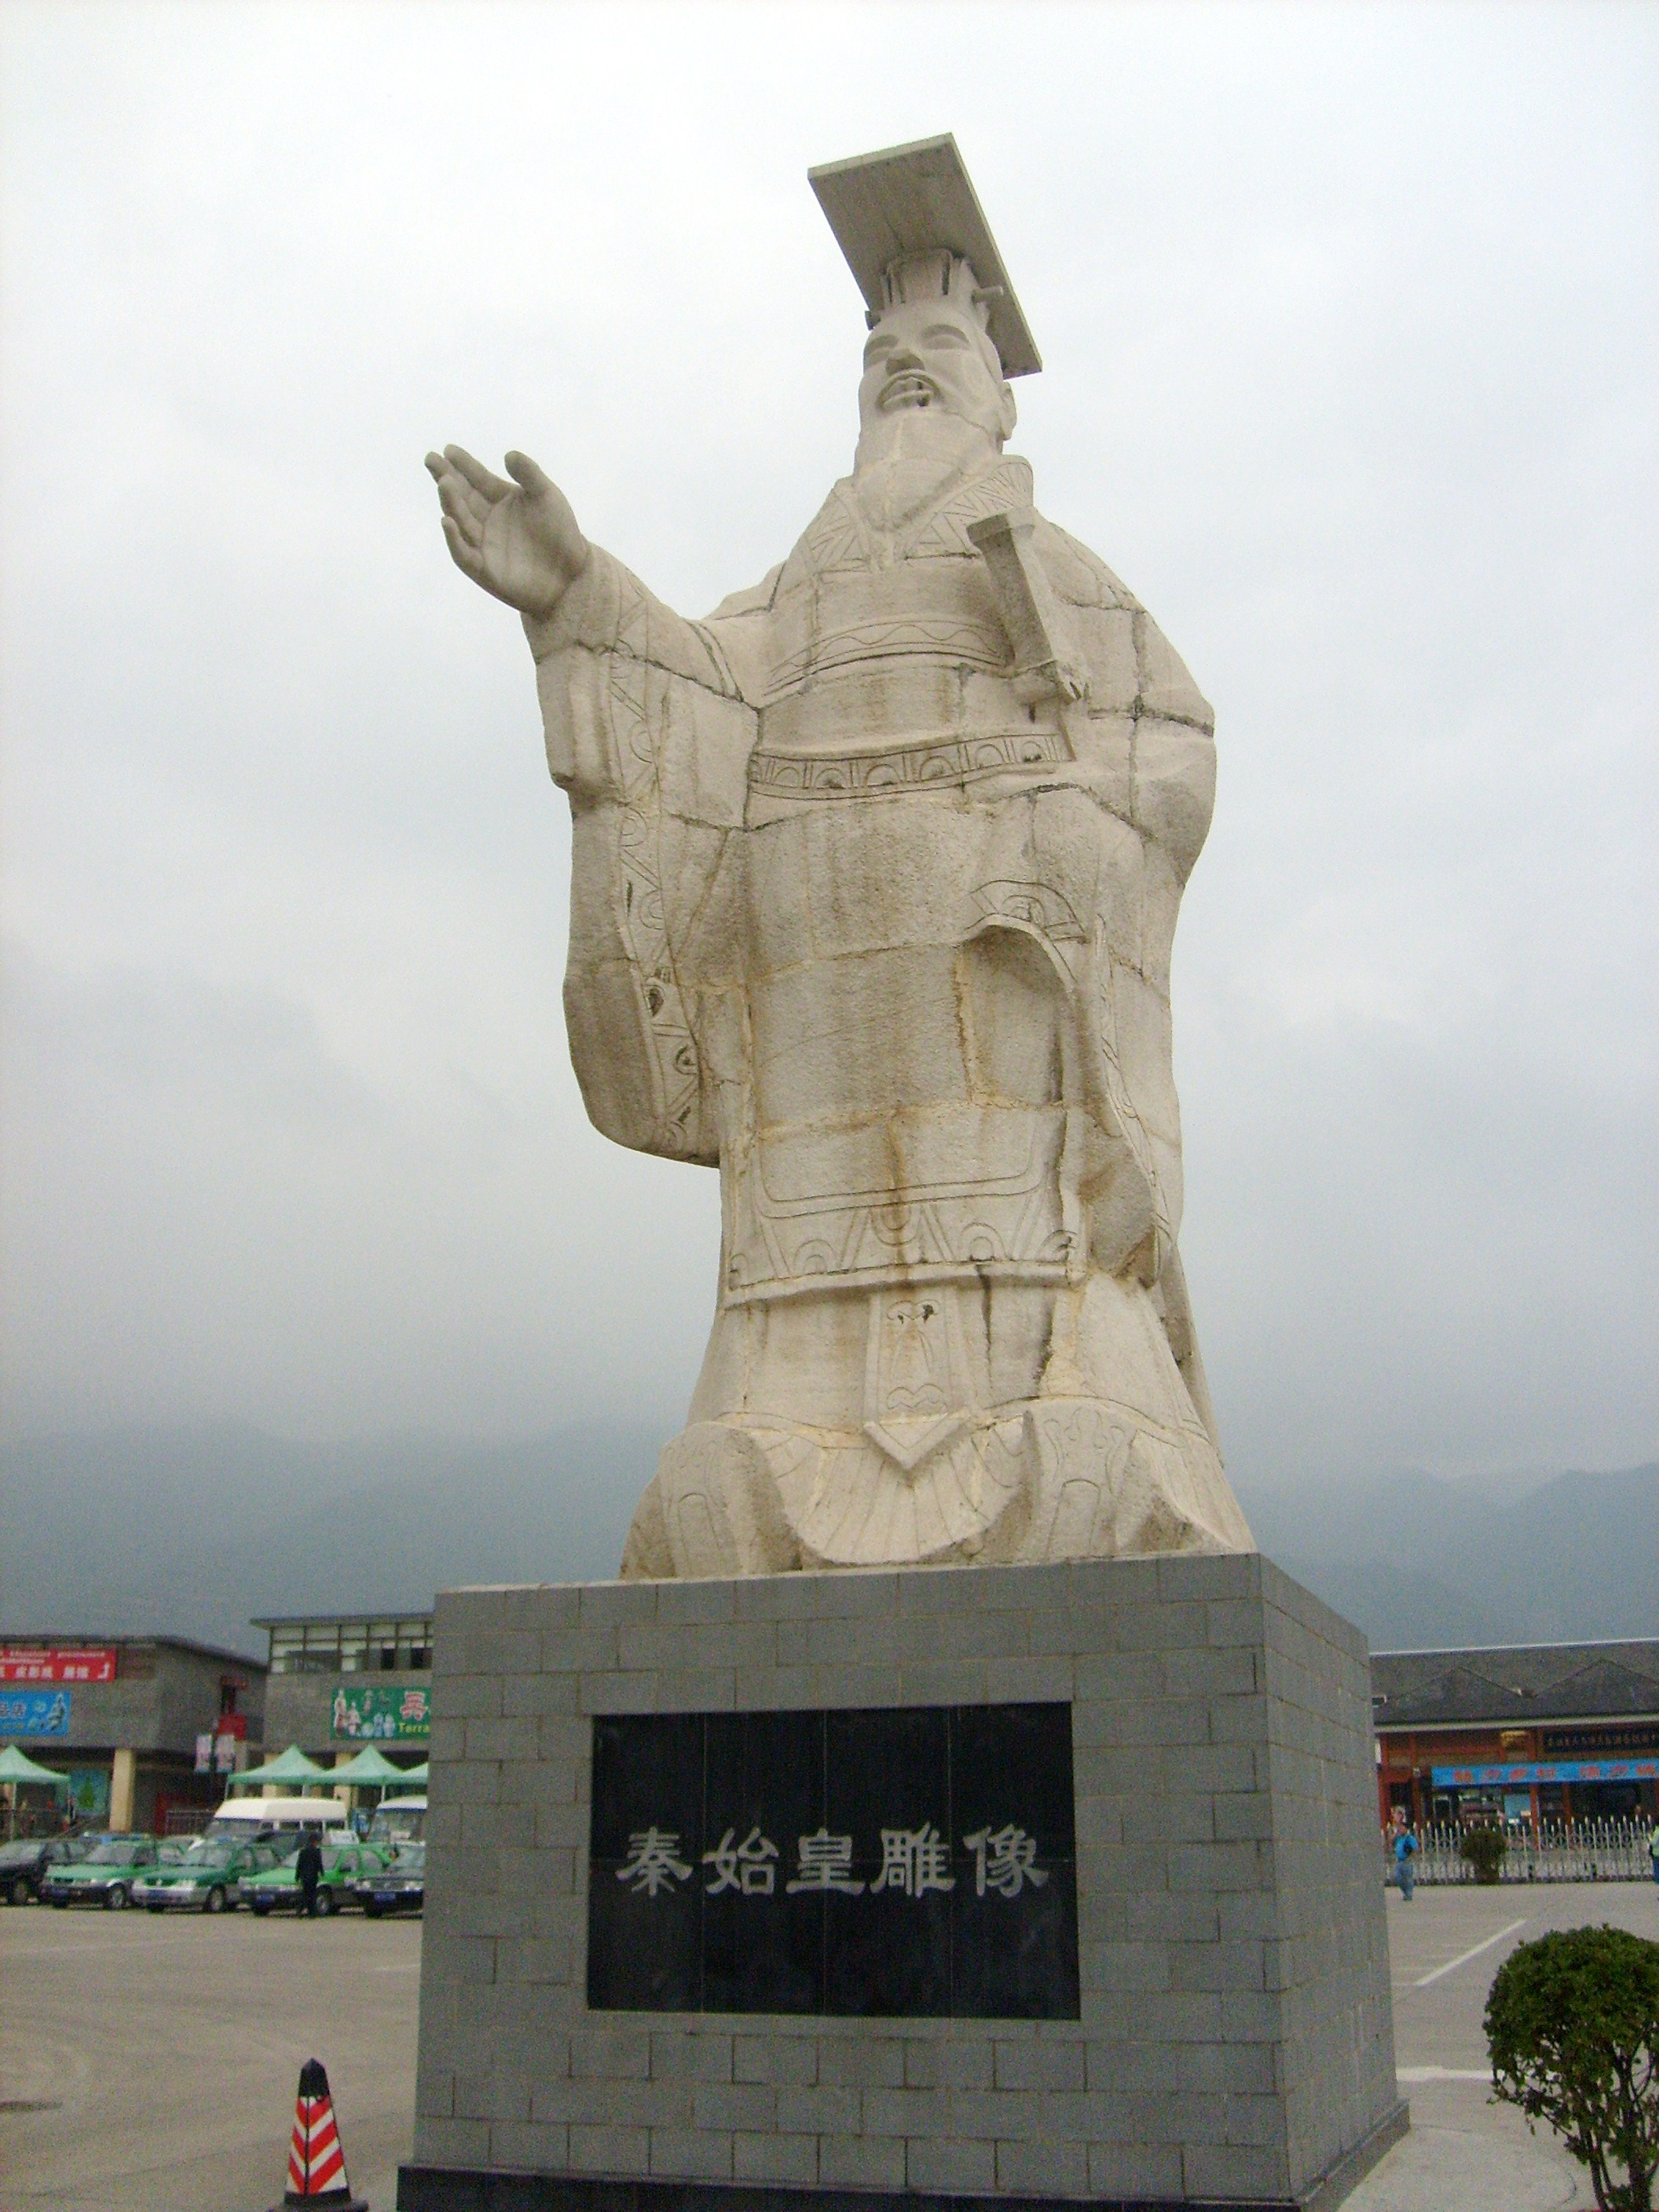 Statue of Emperor Qin, who commissioned the Terra Cotta Warriors